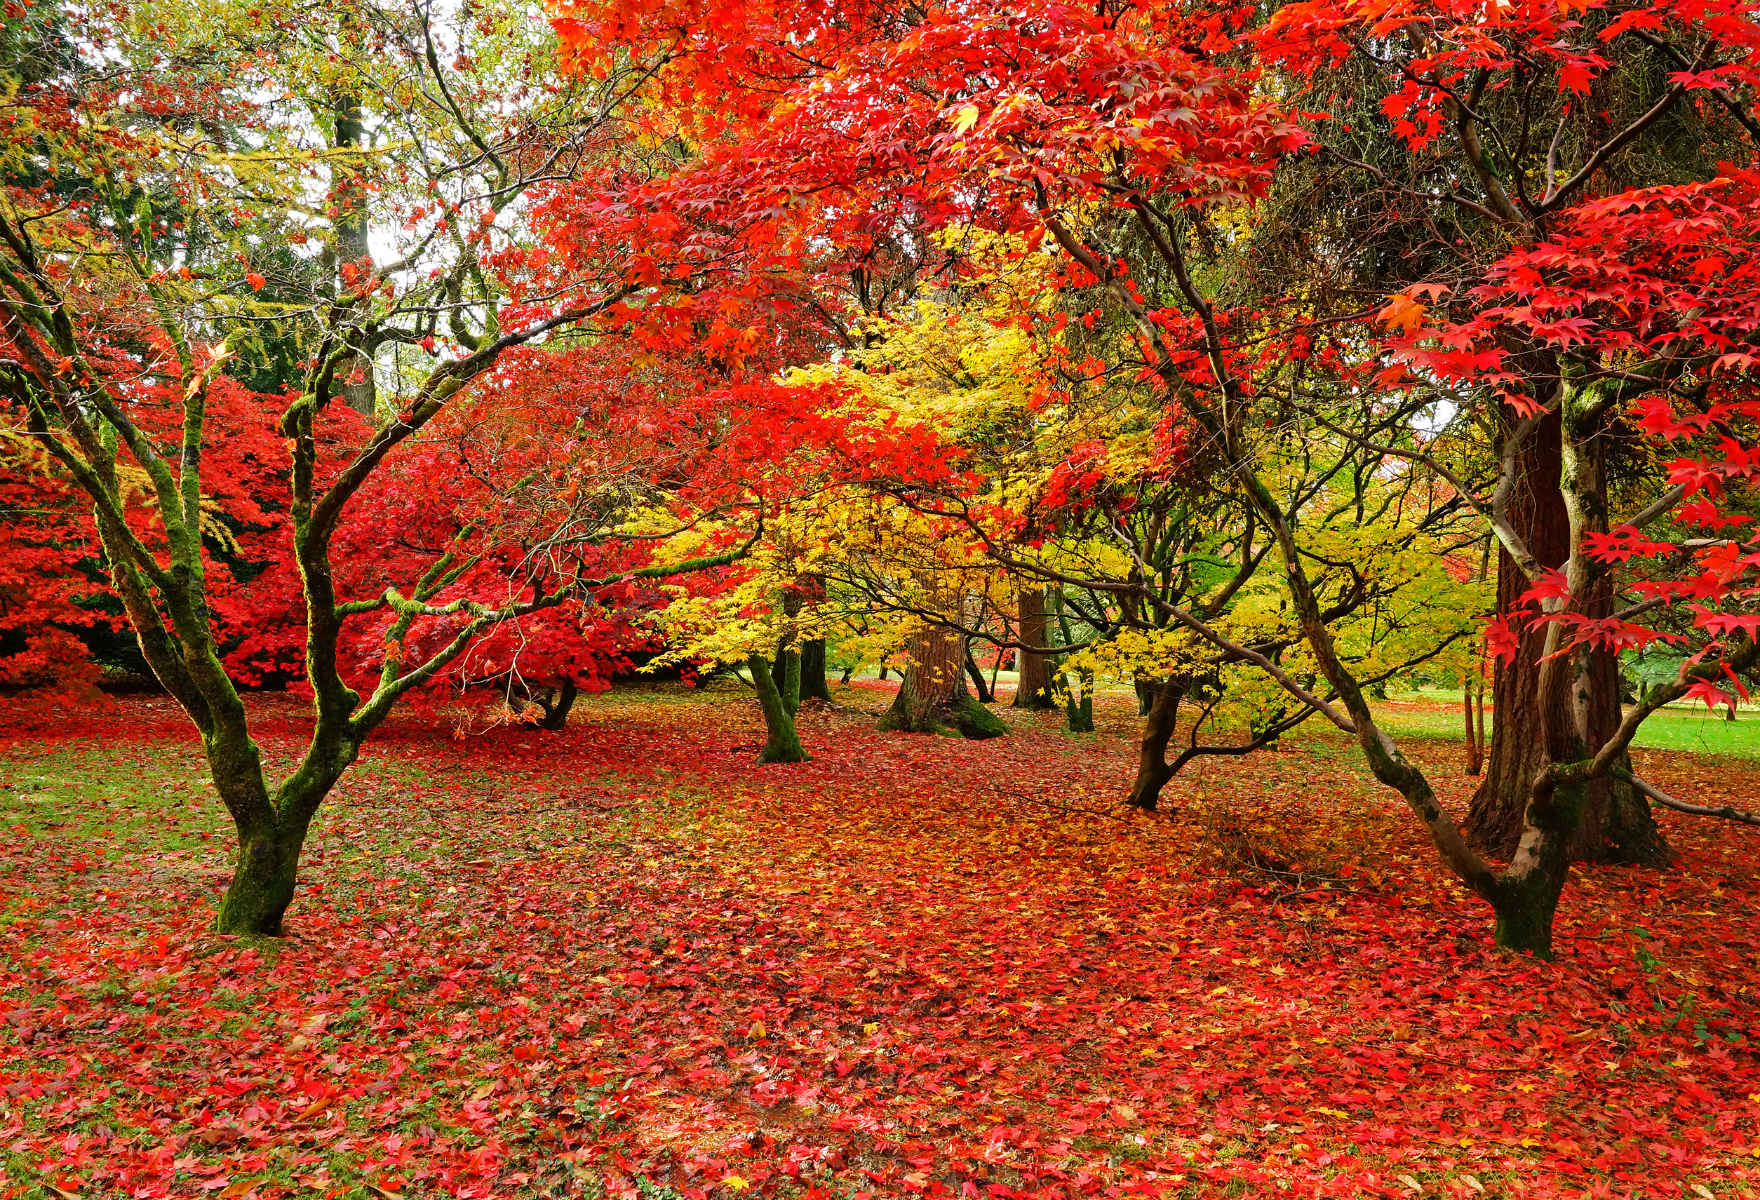 The acer trees in autumn colours at Westonbirt Arboretum (credit: PJ photography/Shutterstock)